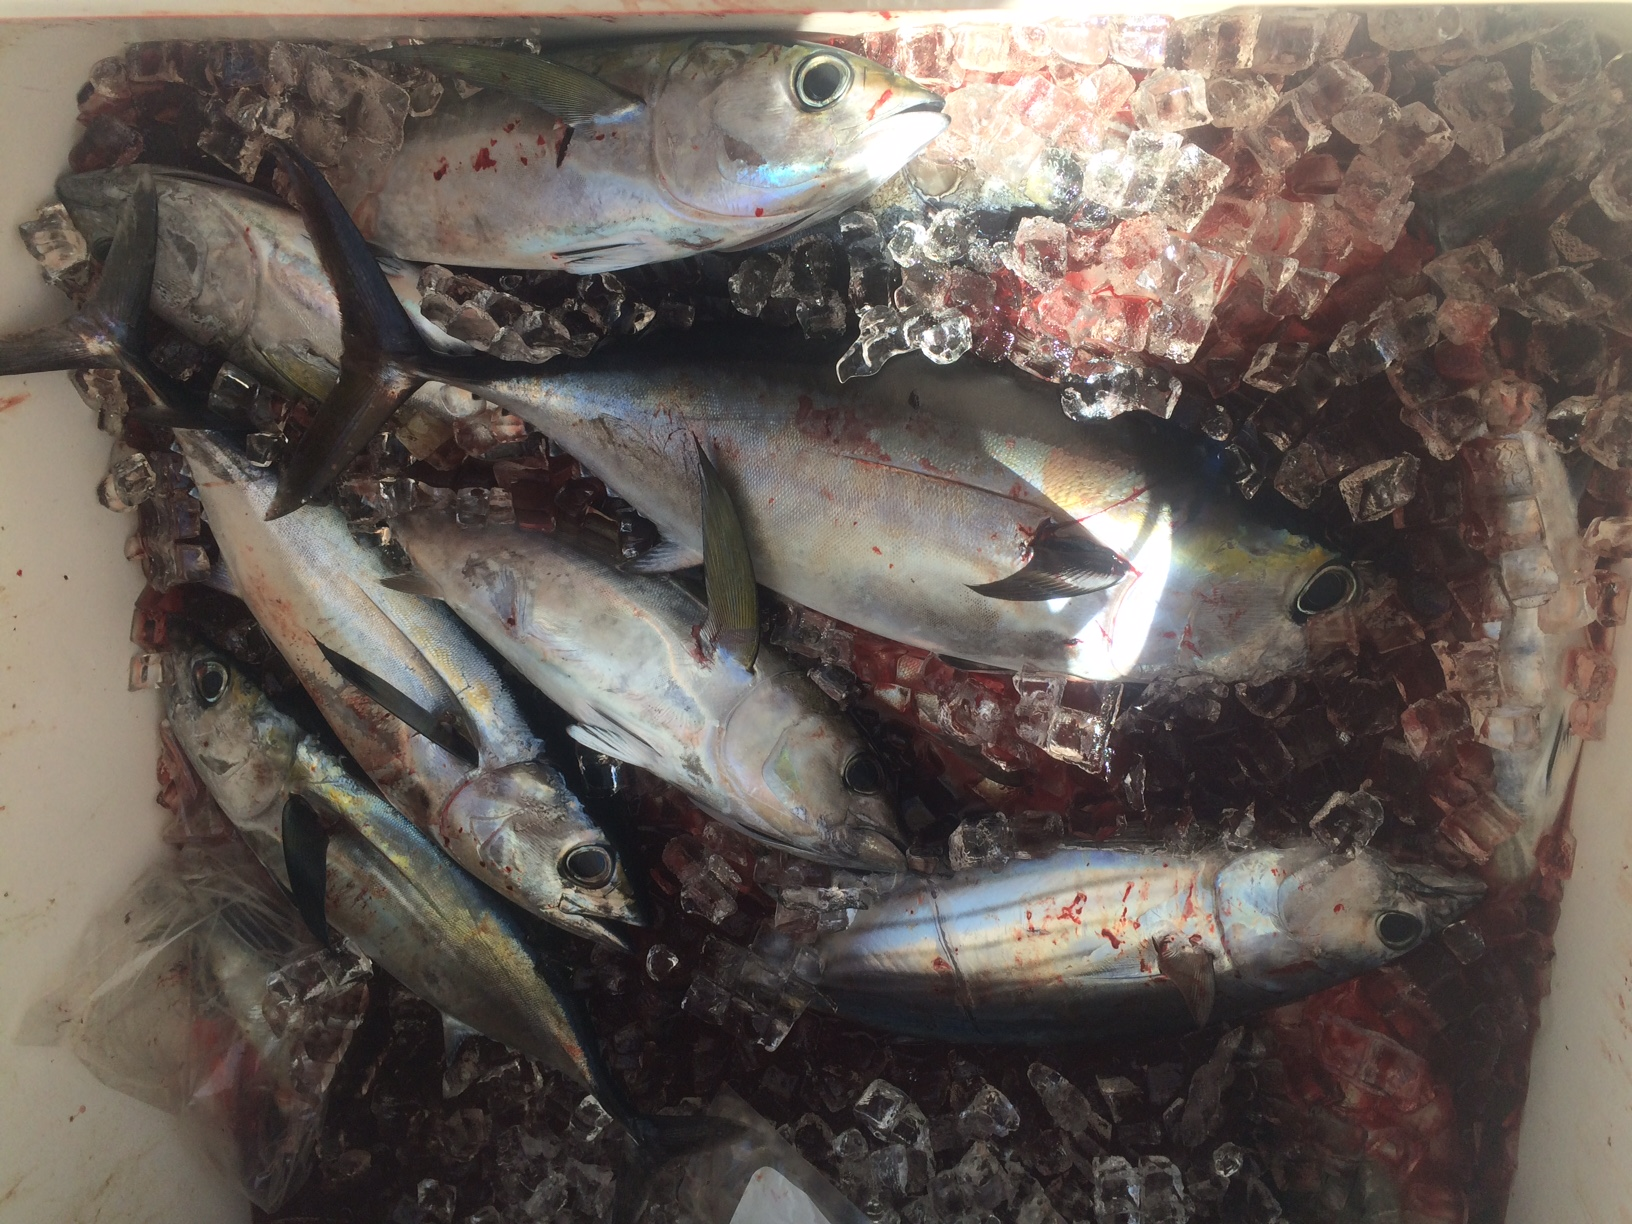 A box full of blackfin tuna after an offshore fishing charter with Capt. Doug is common. Make sure to ask about our special tuna charters.